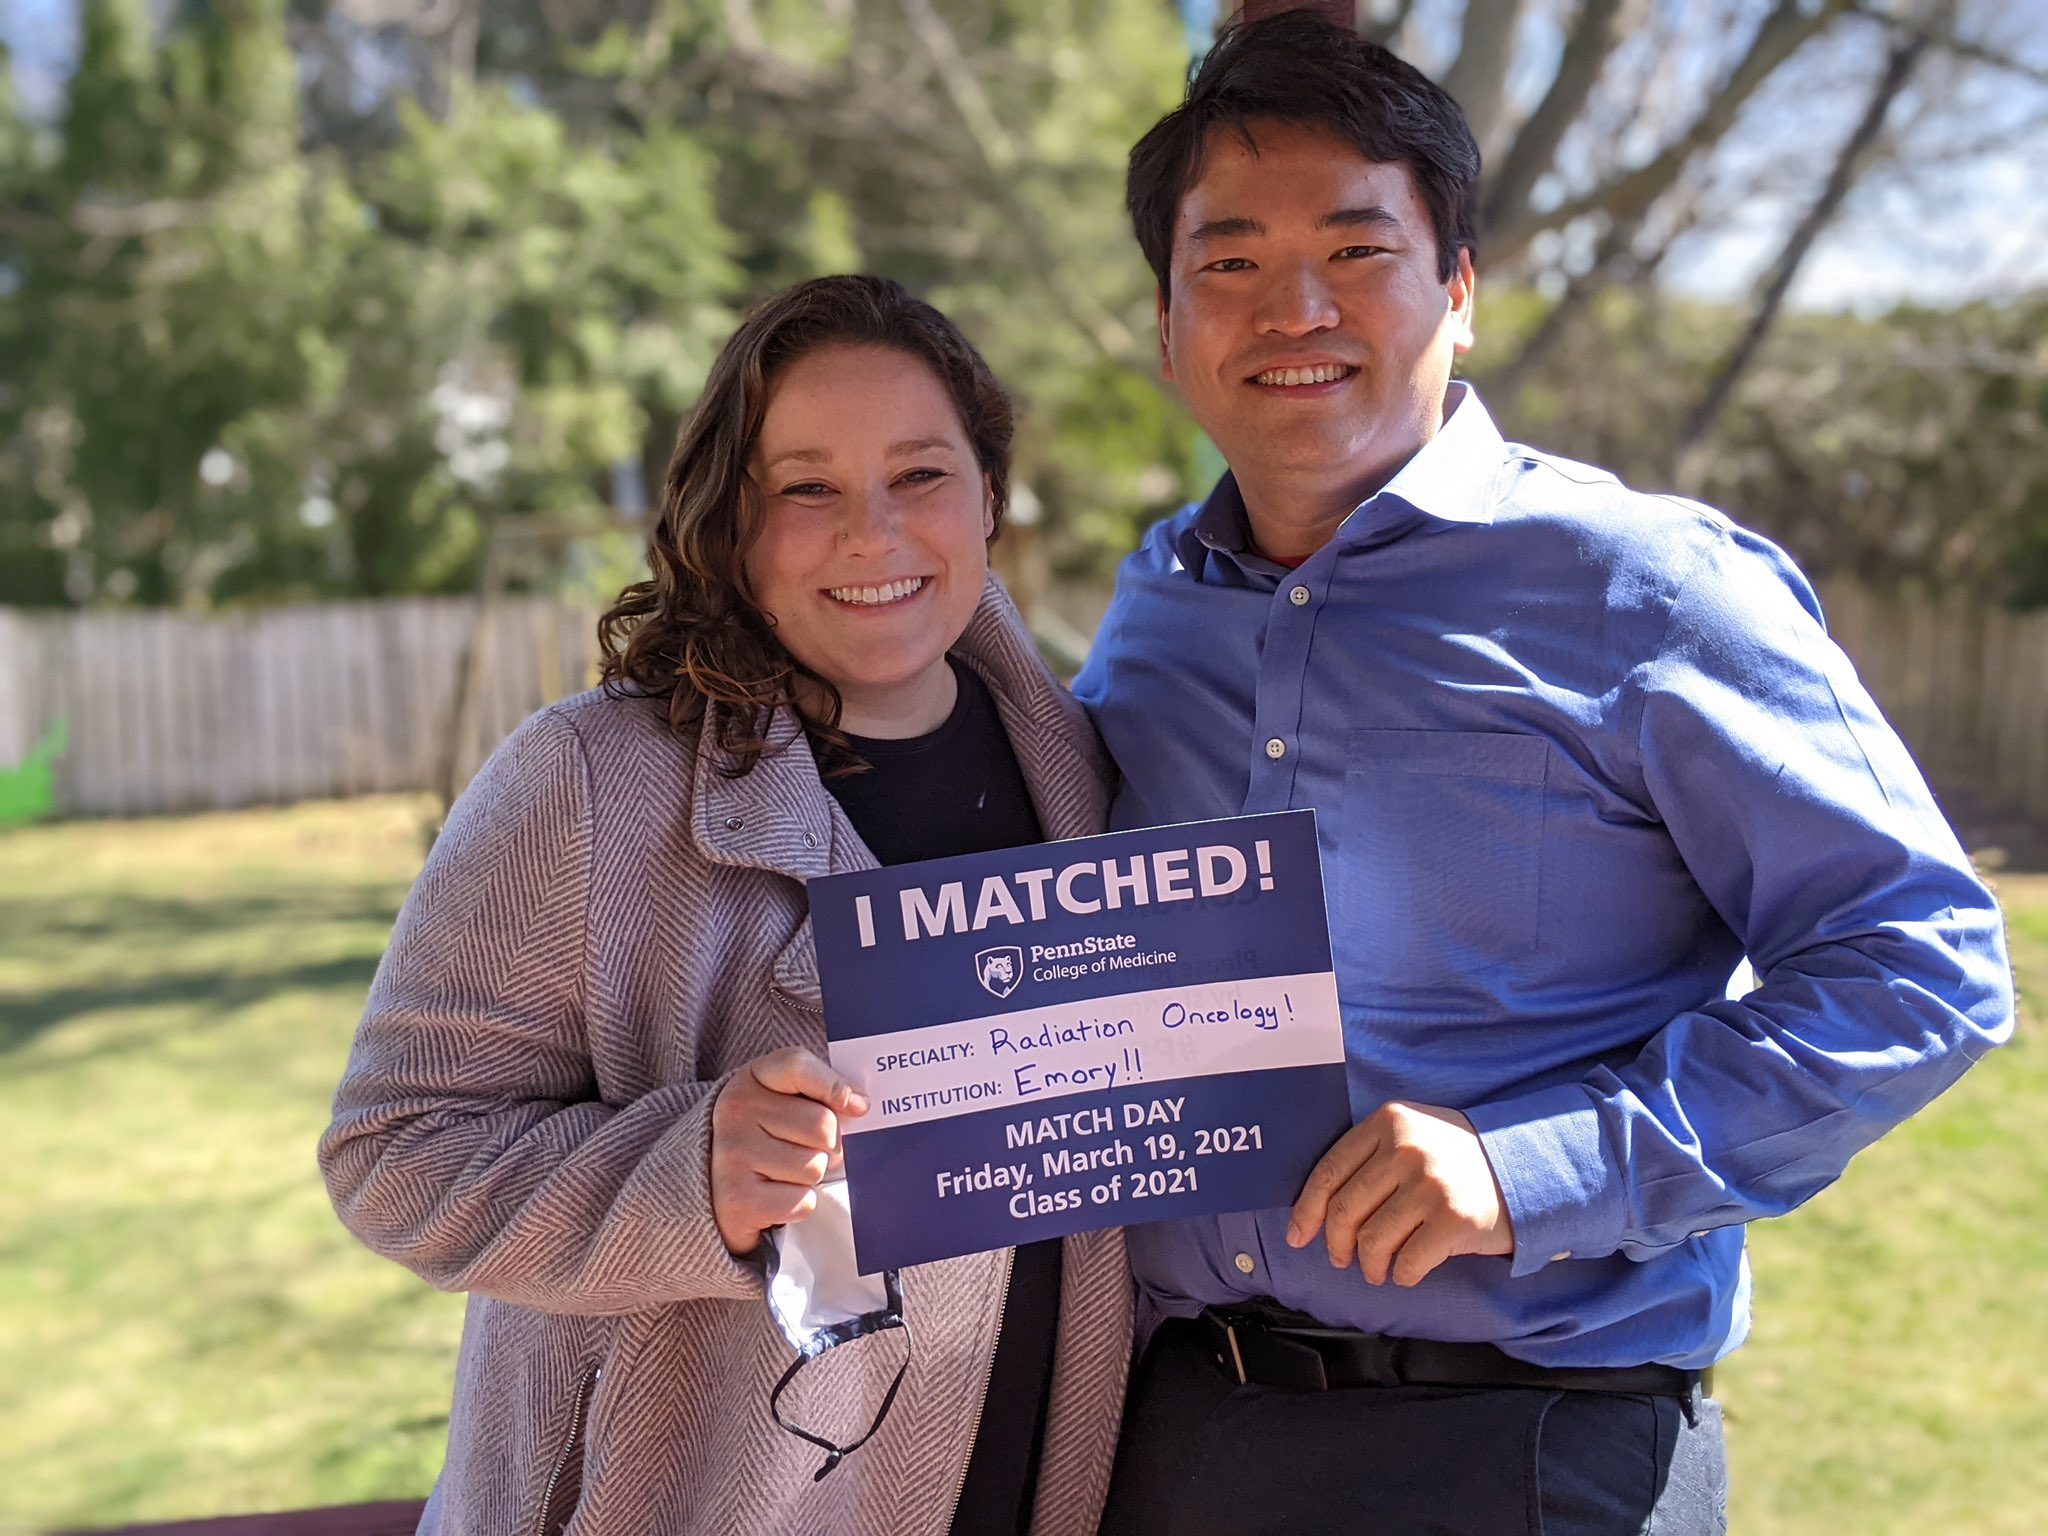 A couple stands outside holding an I Matched sign for Radiation Oncology at Emory.